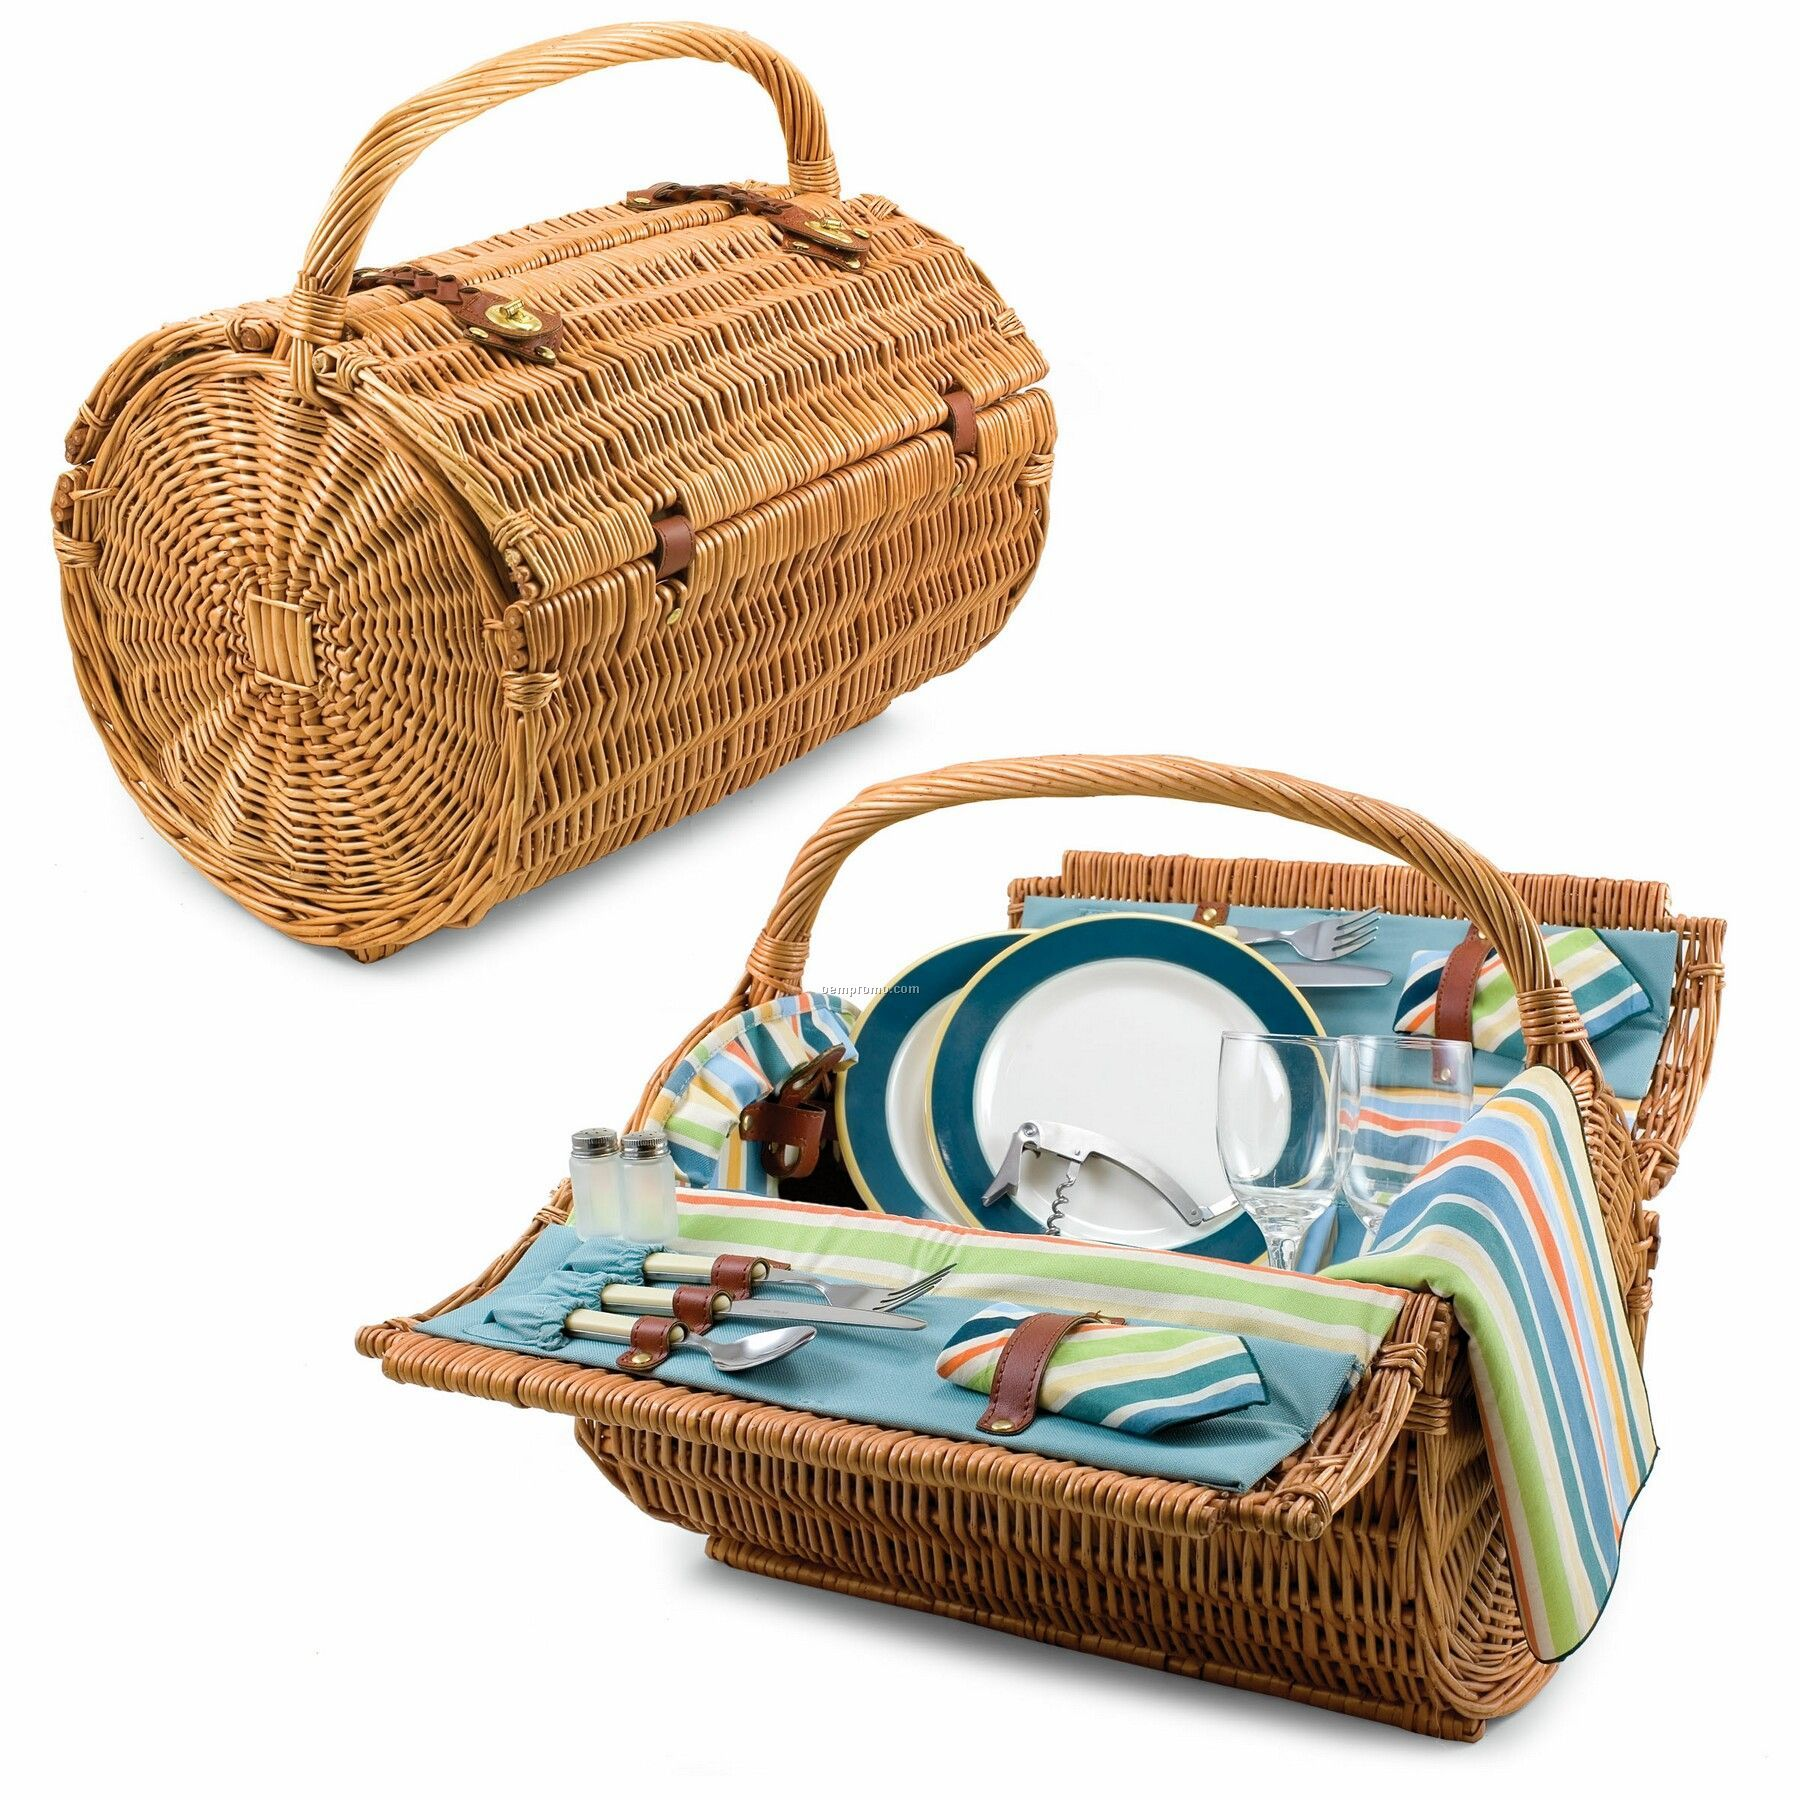 "St. Tropez 18.5"" Barrel Picnic Basket W/ Service For 2 (Aqua Stripe)"